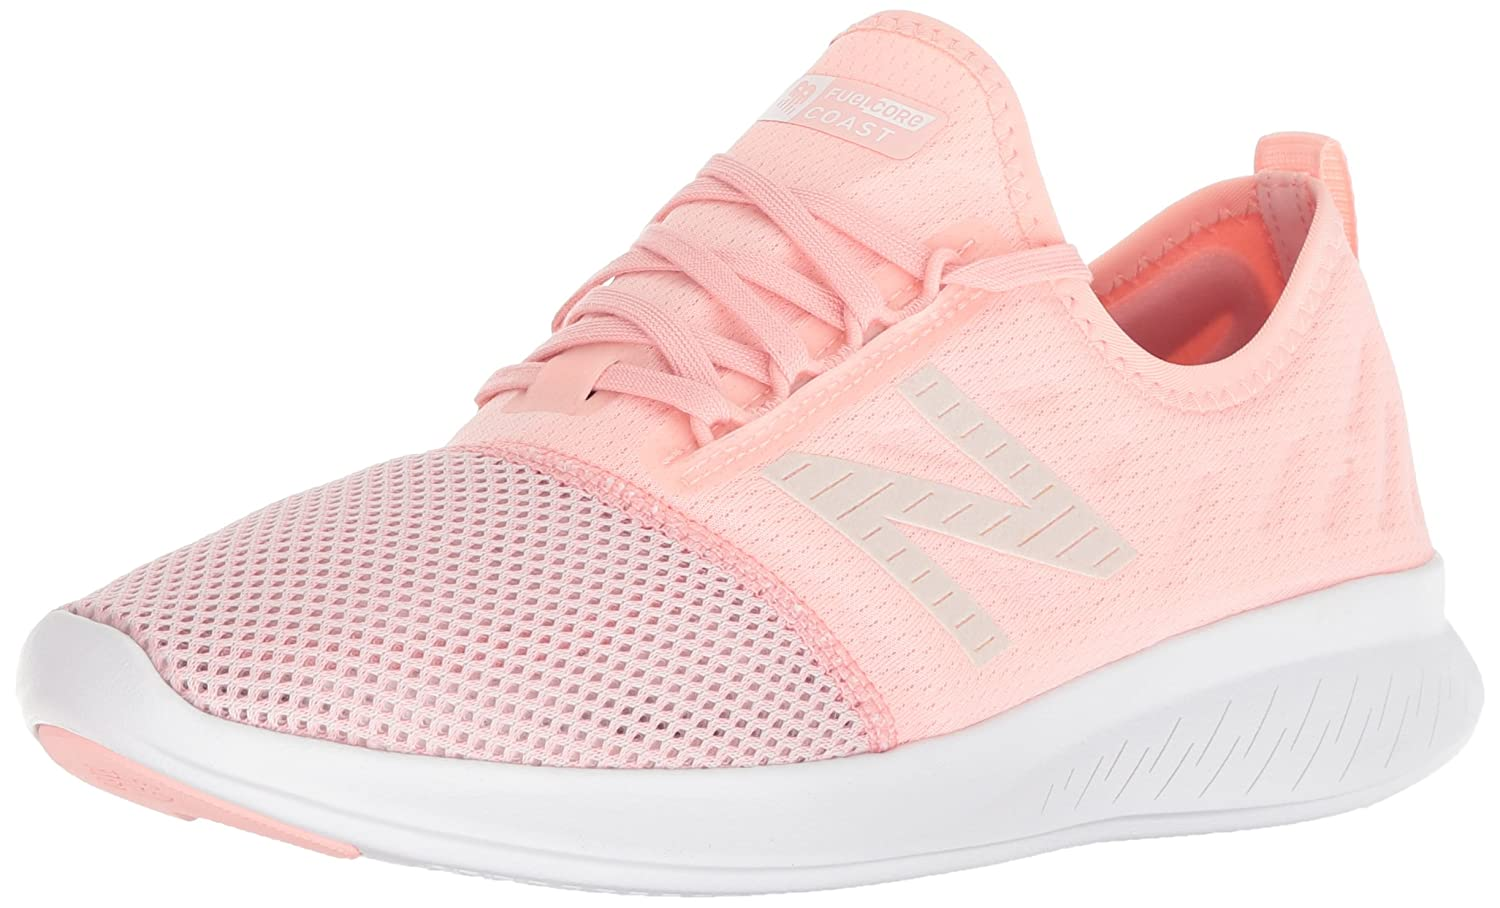 New Balance Women's Coast V4 FuelCore Running Shoe B075R7J4GB 7.5 D US|Himalayan Pink